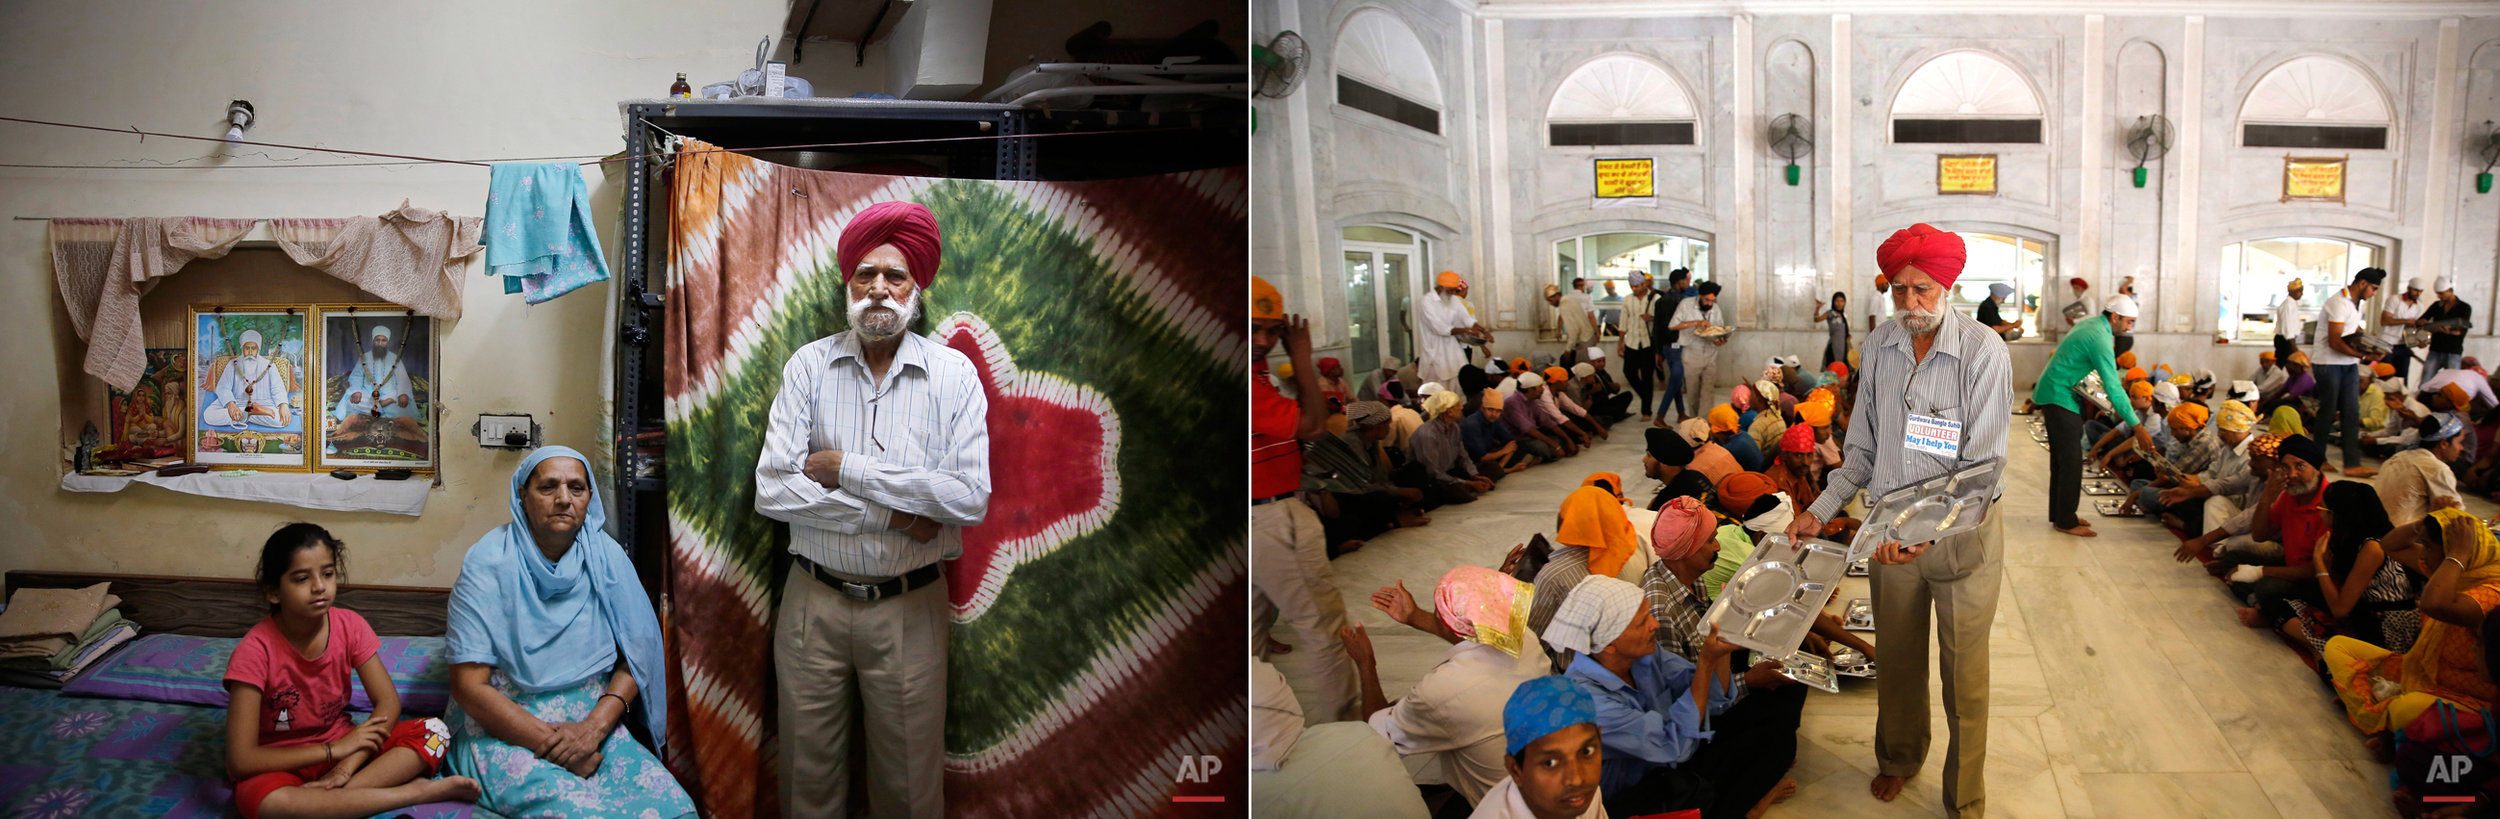 This two picture combo shows, on the left, Jaspal Singh,69, a retired carpenter, poses with his family at their house in New Delhi, India on May 28, 2015, as on right, he serves empty plates to devotees for langar, or free community meal, at the Bangla Sahib Gurudwara or Sikh temple, on May 27, 2015 in New Delhi, India. Service is one of the most integral traditions of gurudwaras. From cleaning to preparing tons of food every day there is plenty of work to be done. And there are plenty of sevadaars, or volunteers, to do it. While the gurudwara employs a small group of men to help manage the kitchen, it depends on visiting worshippers to contribute nearly half of all work and food supplies. (AP Photo/Manish Swarup)